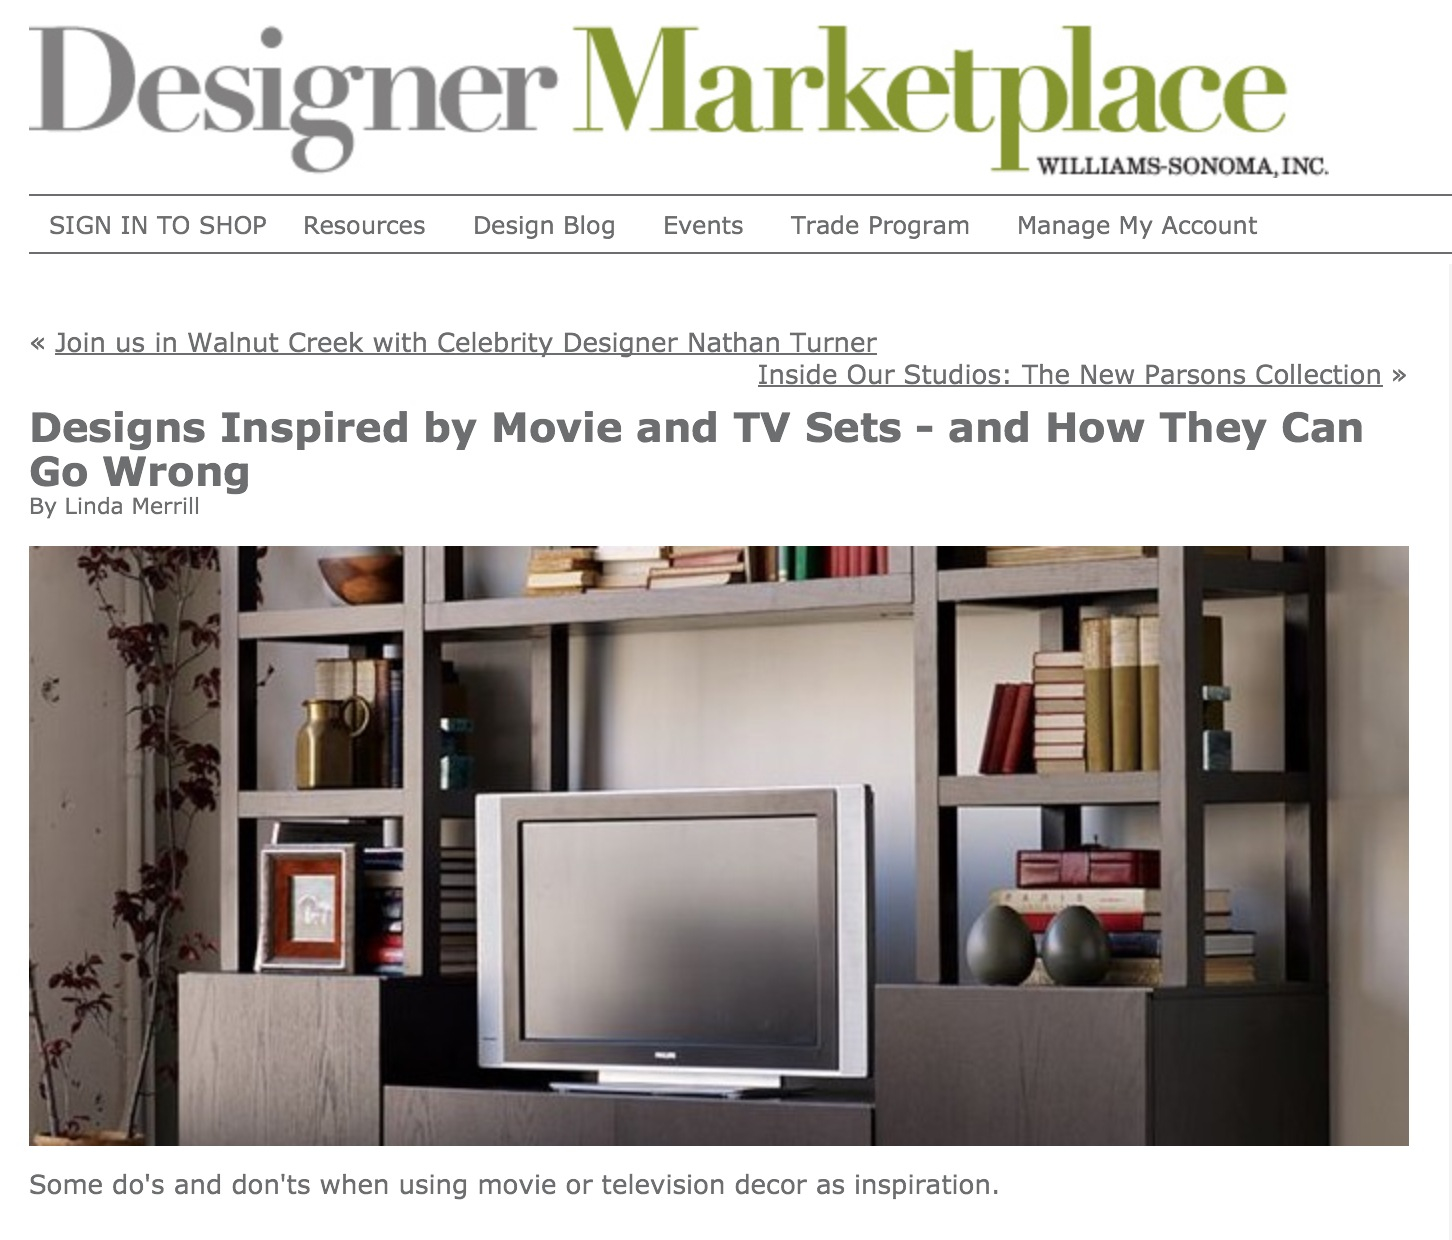 home design interior taking design inspiration from movie or tv my latest article on williams sonoma designer marketplace offers some do s and don ts when taking decorating inspiration from movie sets